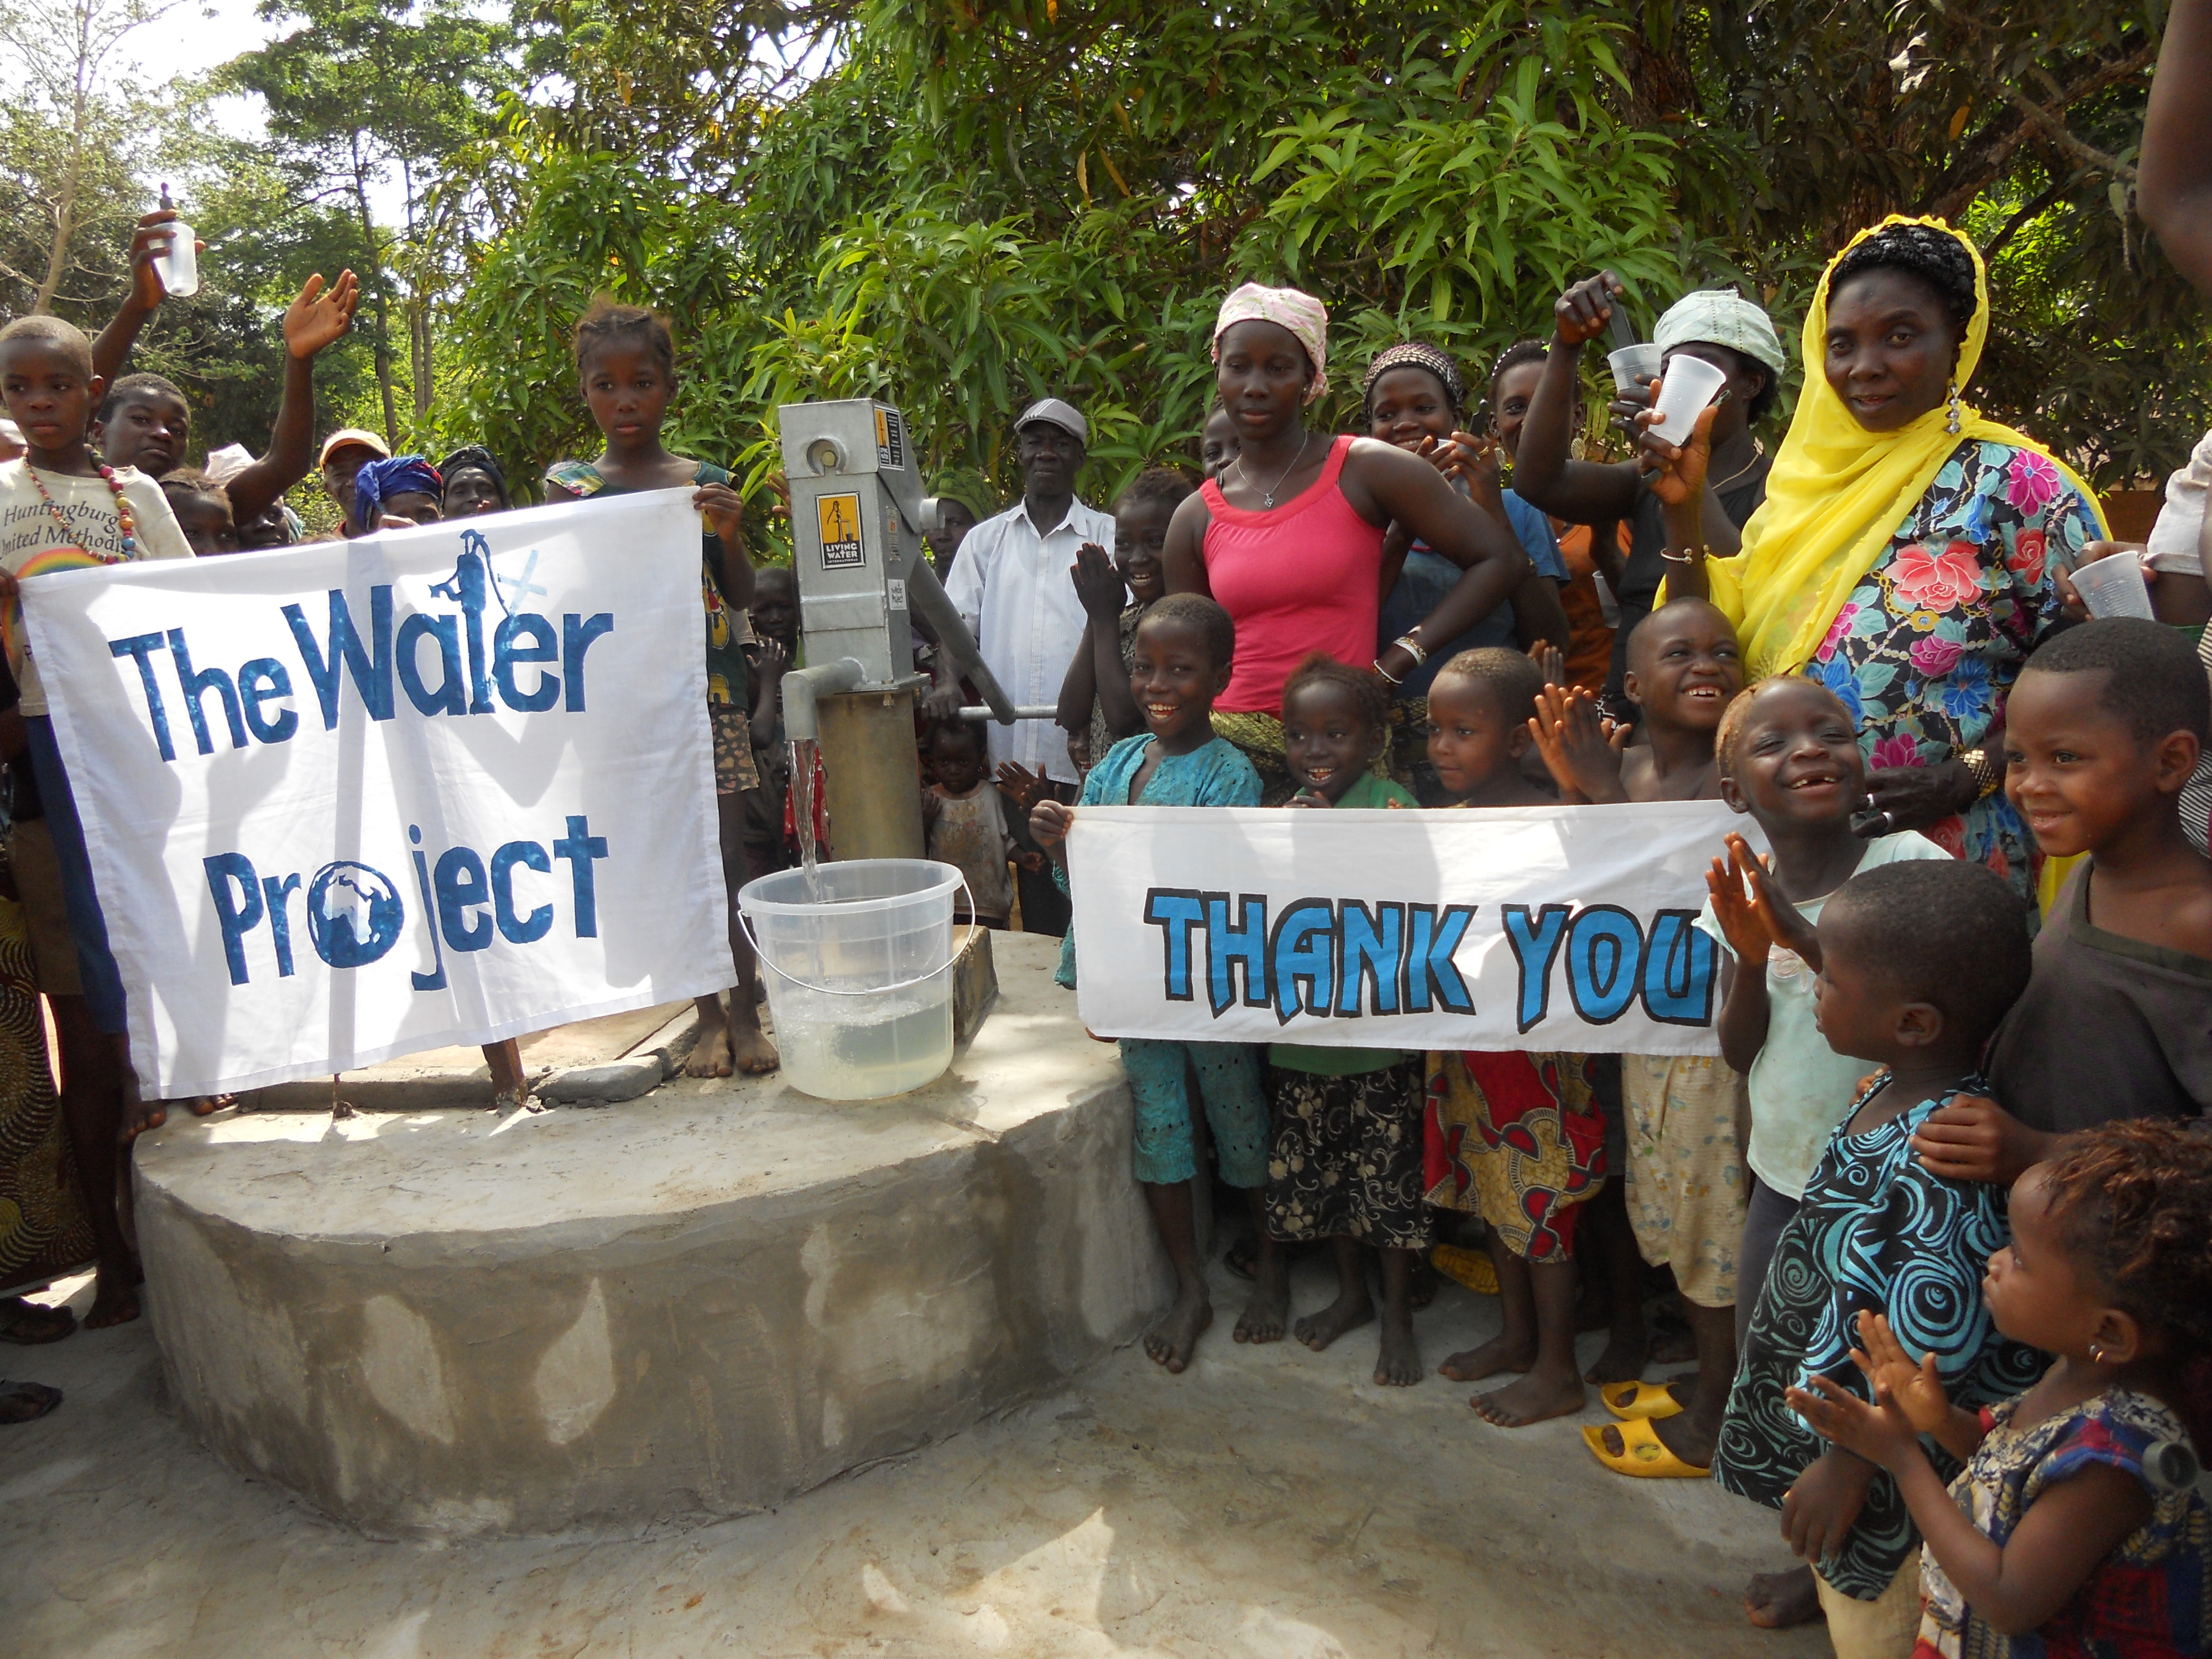 The Water Project : 7309487520_2cd8a613b3_o-2